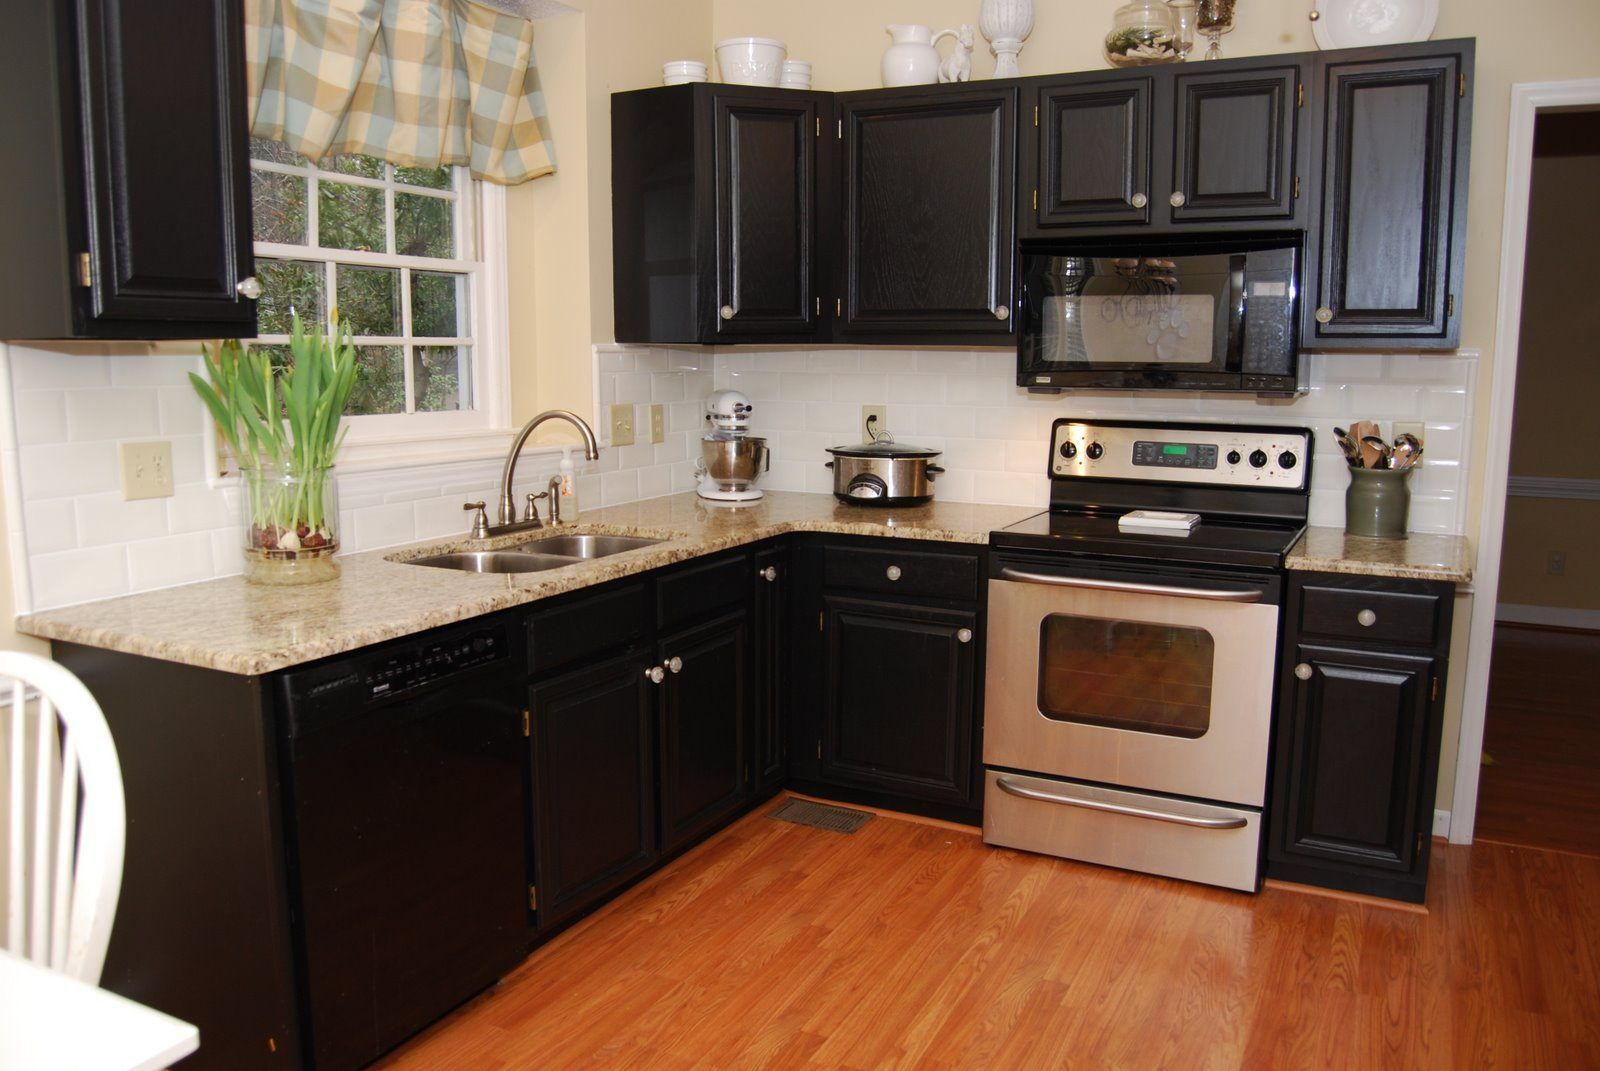 dark-color-kitchen-cabinet-feat-silver-appliances - Outofhome ...